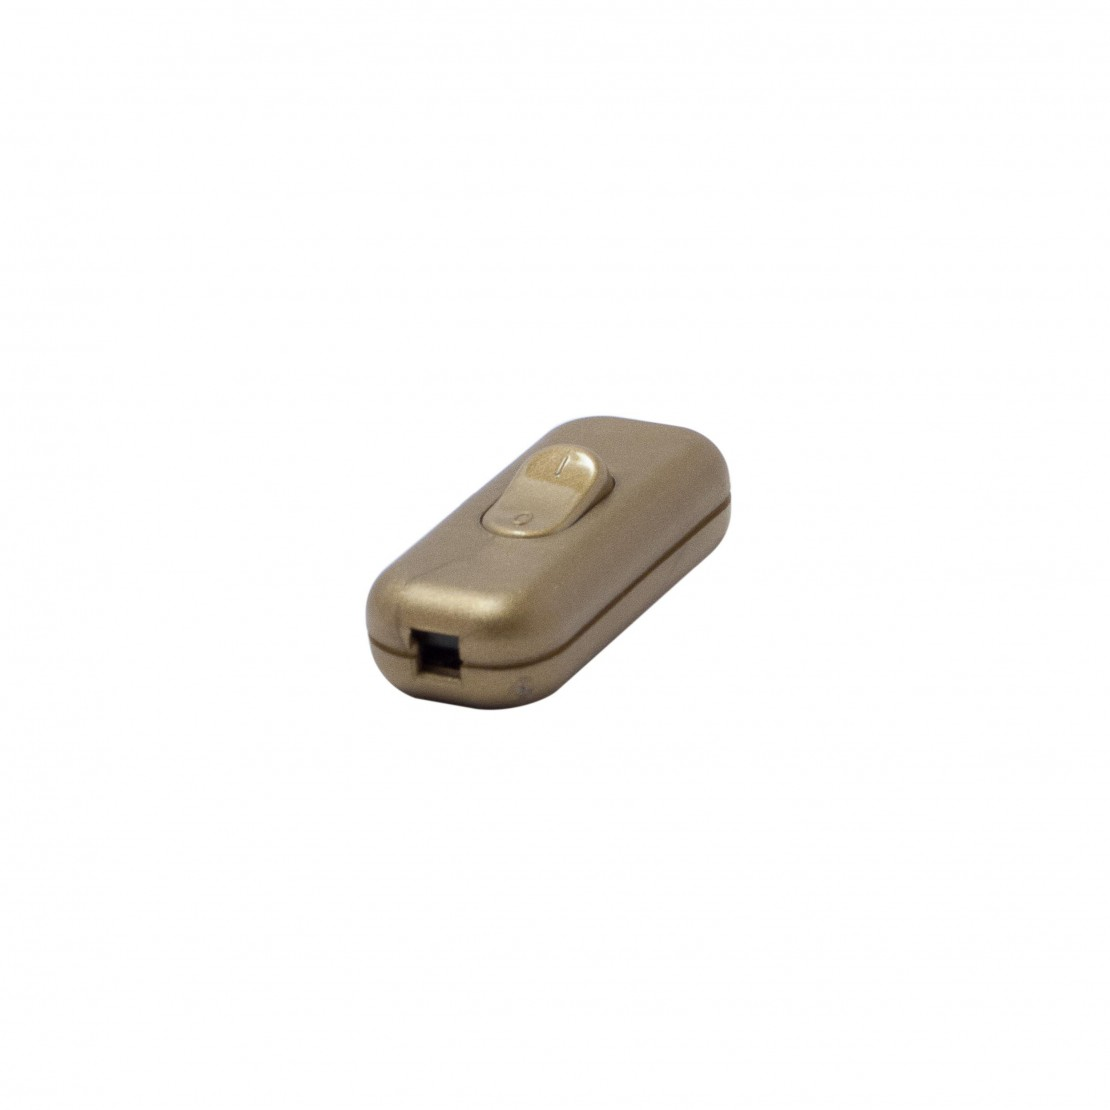 Double pole single throw switch, gold